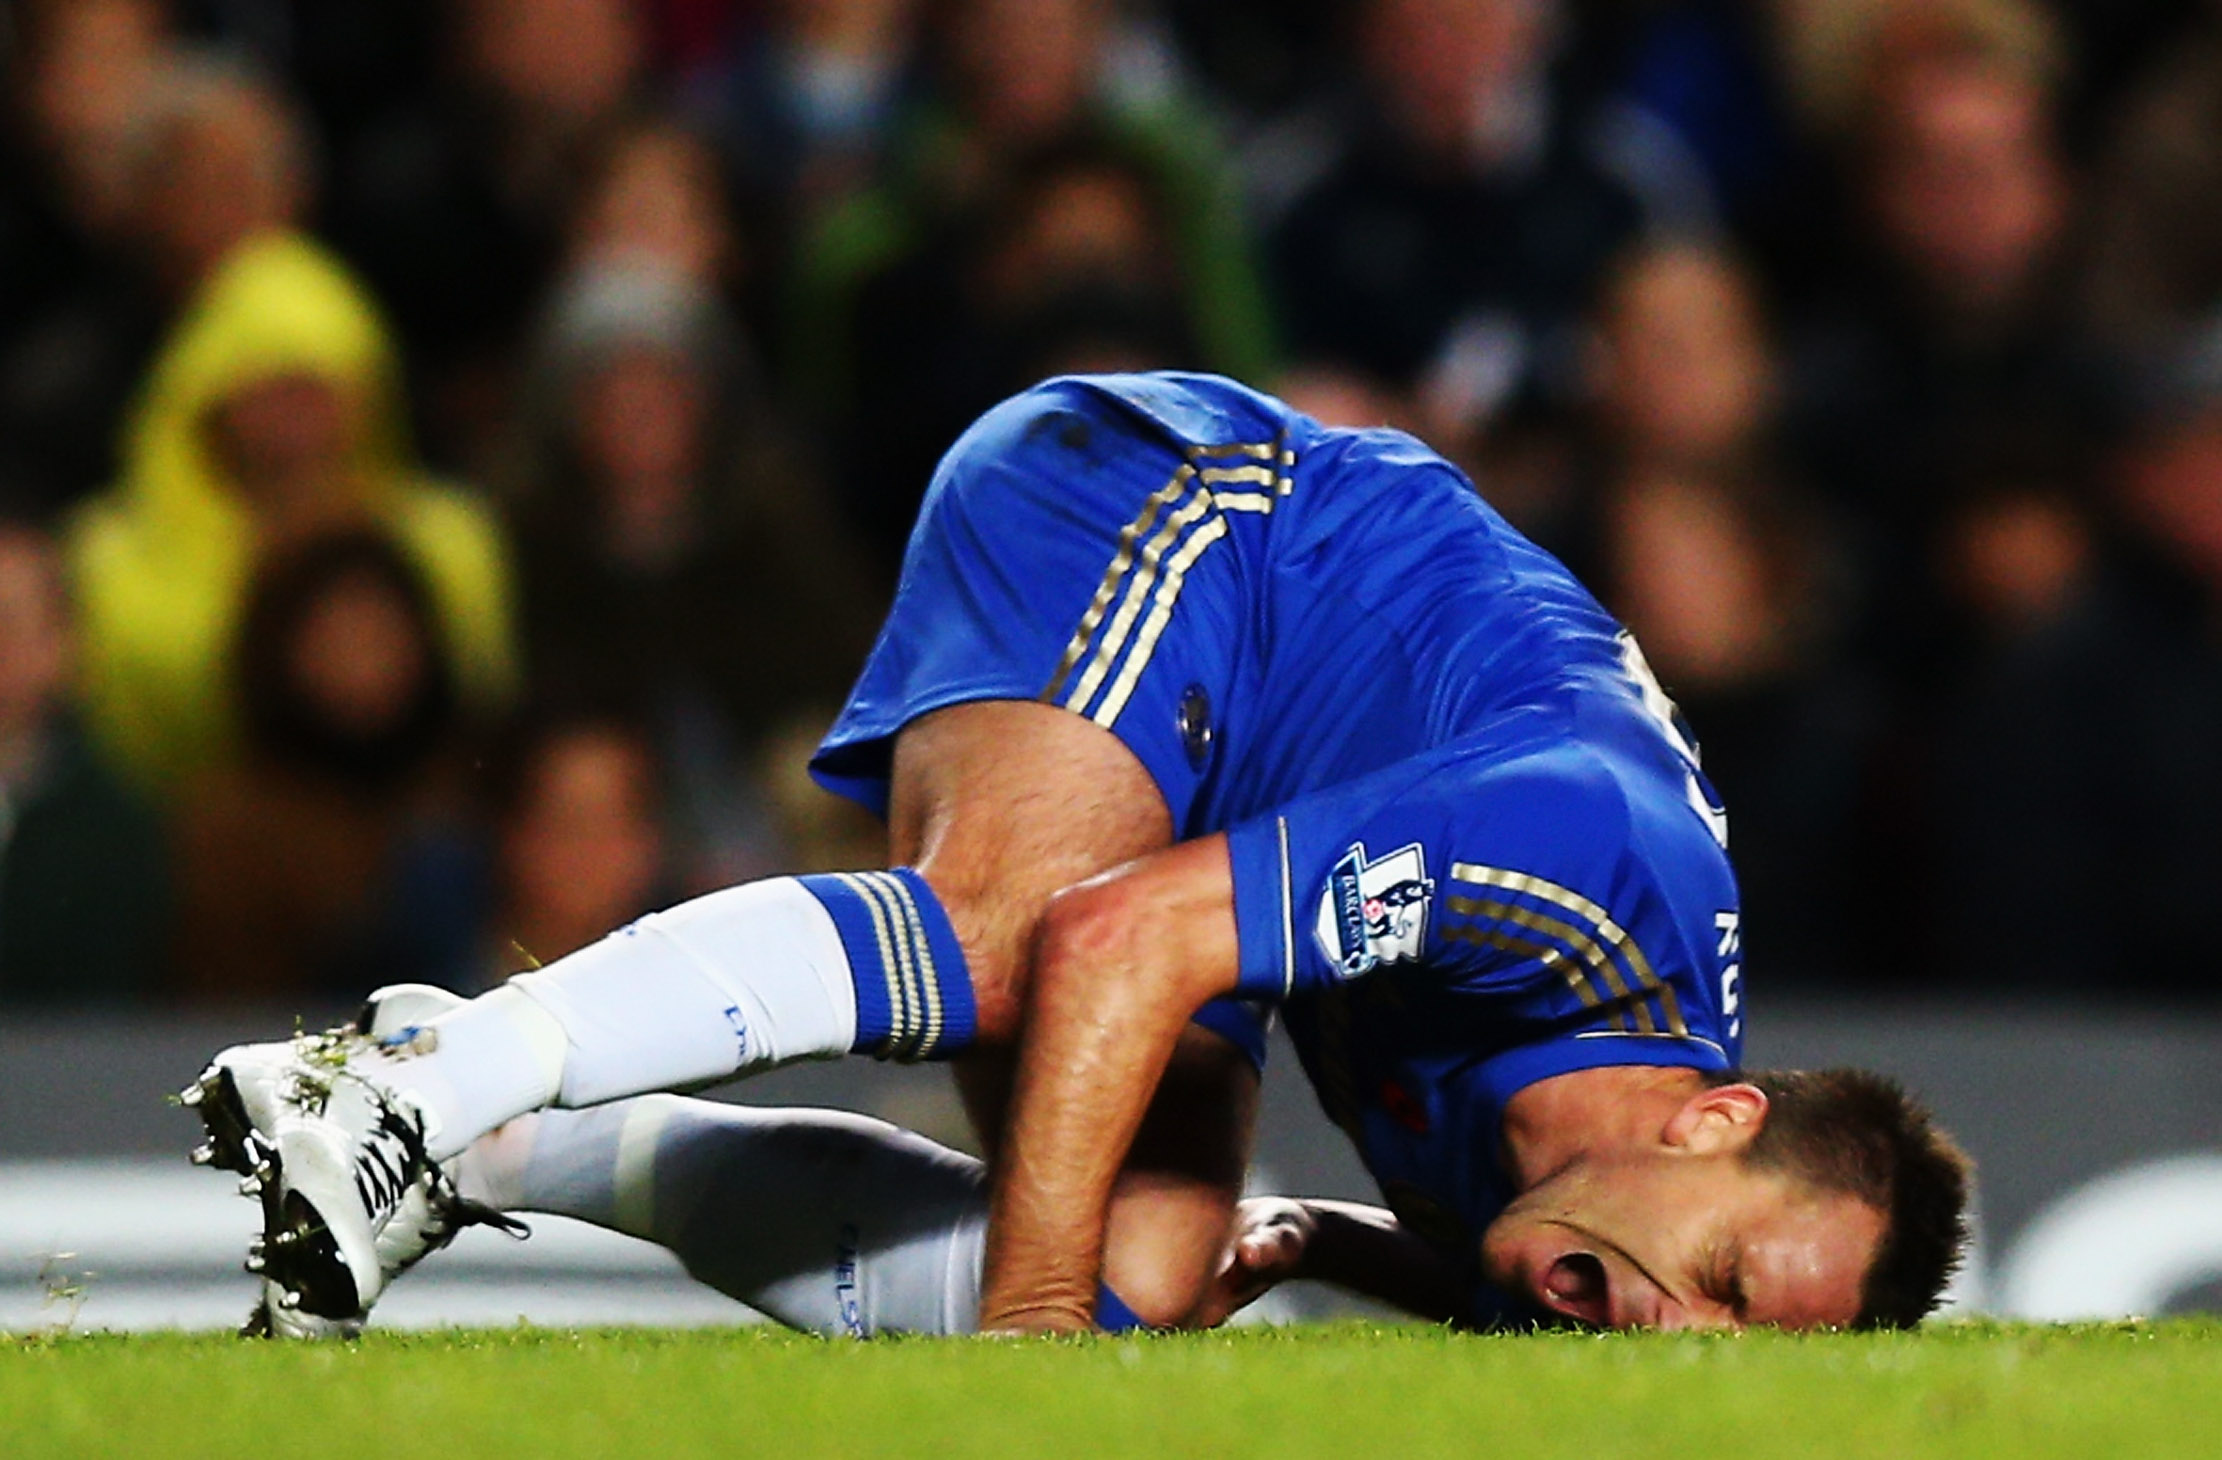 LONDON, ENGLAND - NOVEMBER 11:  John Terry of Chelsea is injured in a collision with Luis Suarez of Liverpool during the Barclays Premier League match between Chelsea and Liverpool at Stamford Bridge on November 11, 2012 in London, England.  (Photo by Cli